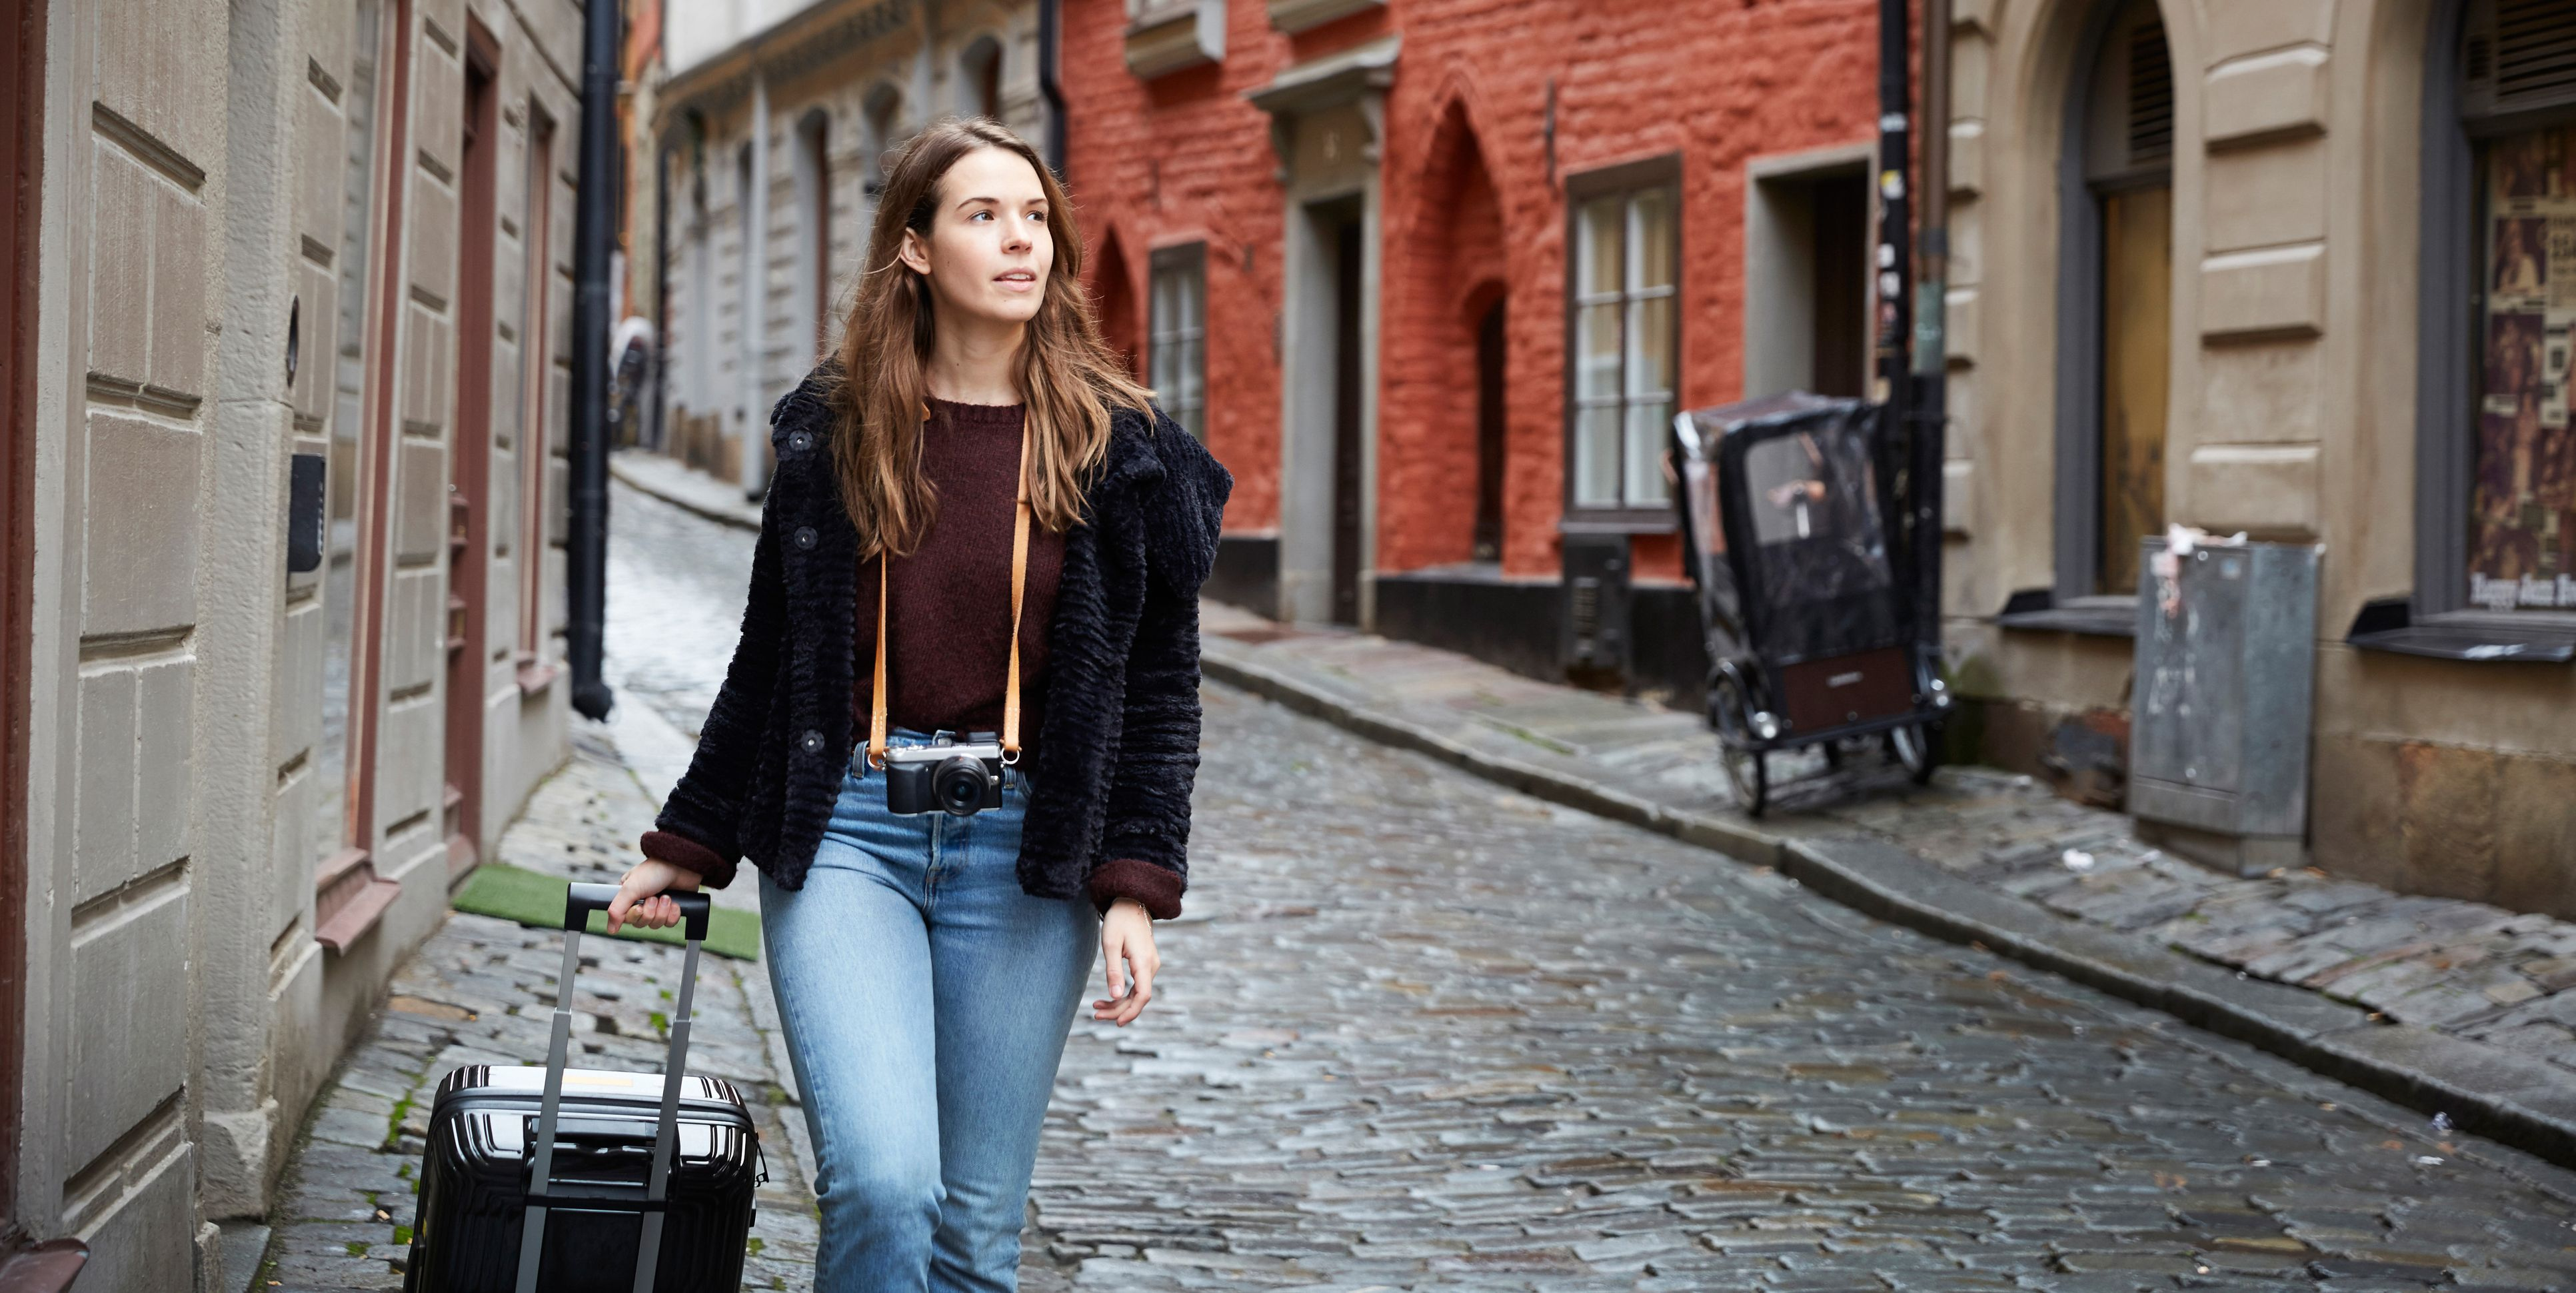 Young woman looking away while walking with luggage in alley